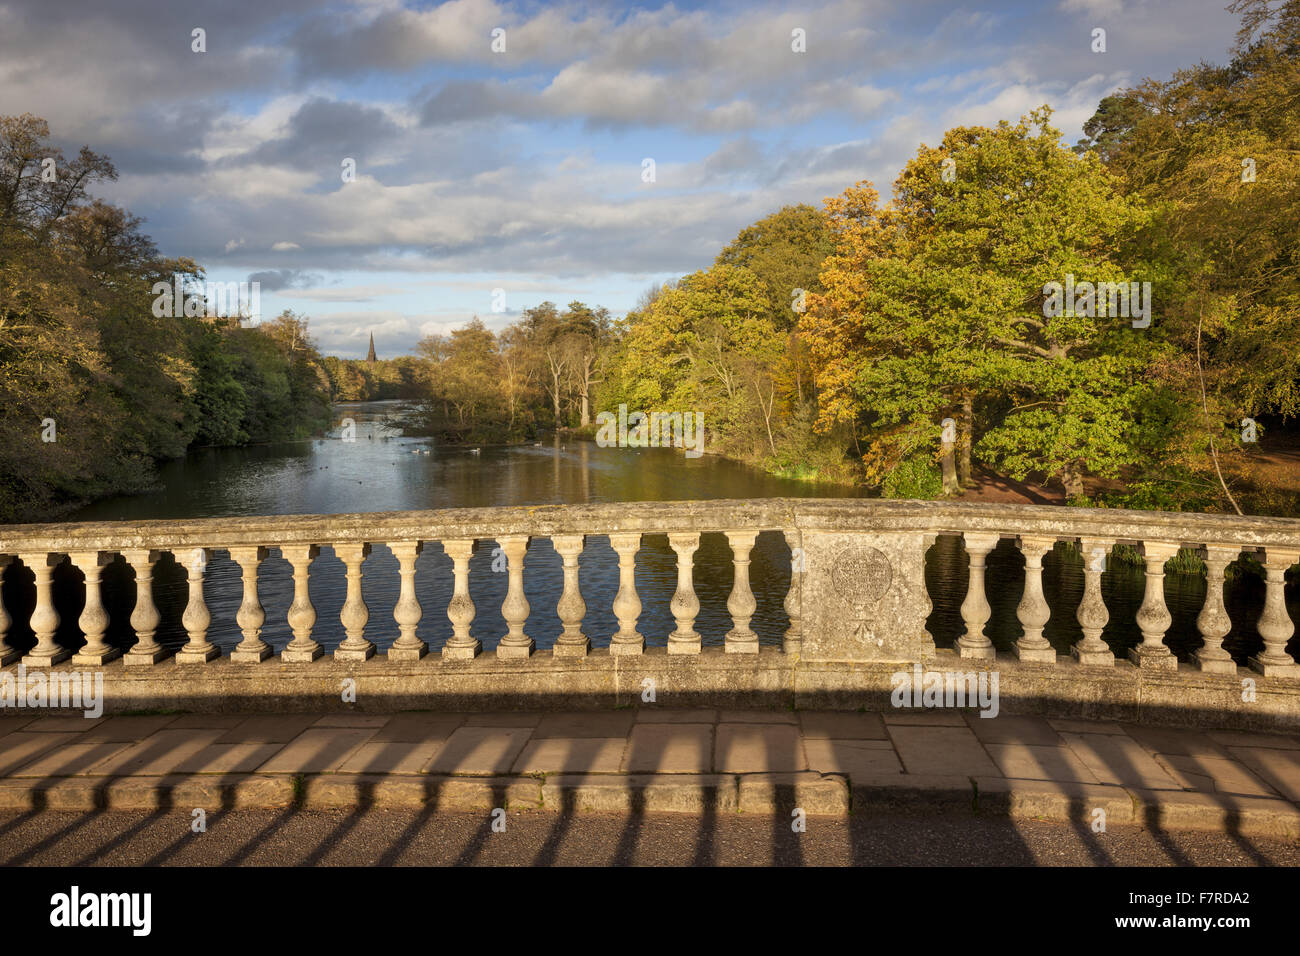 View from the bridge at Clumber Park, built in the mid 18th century, Nottinghamshire. - Stock Image